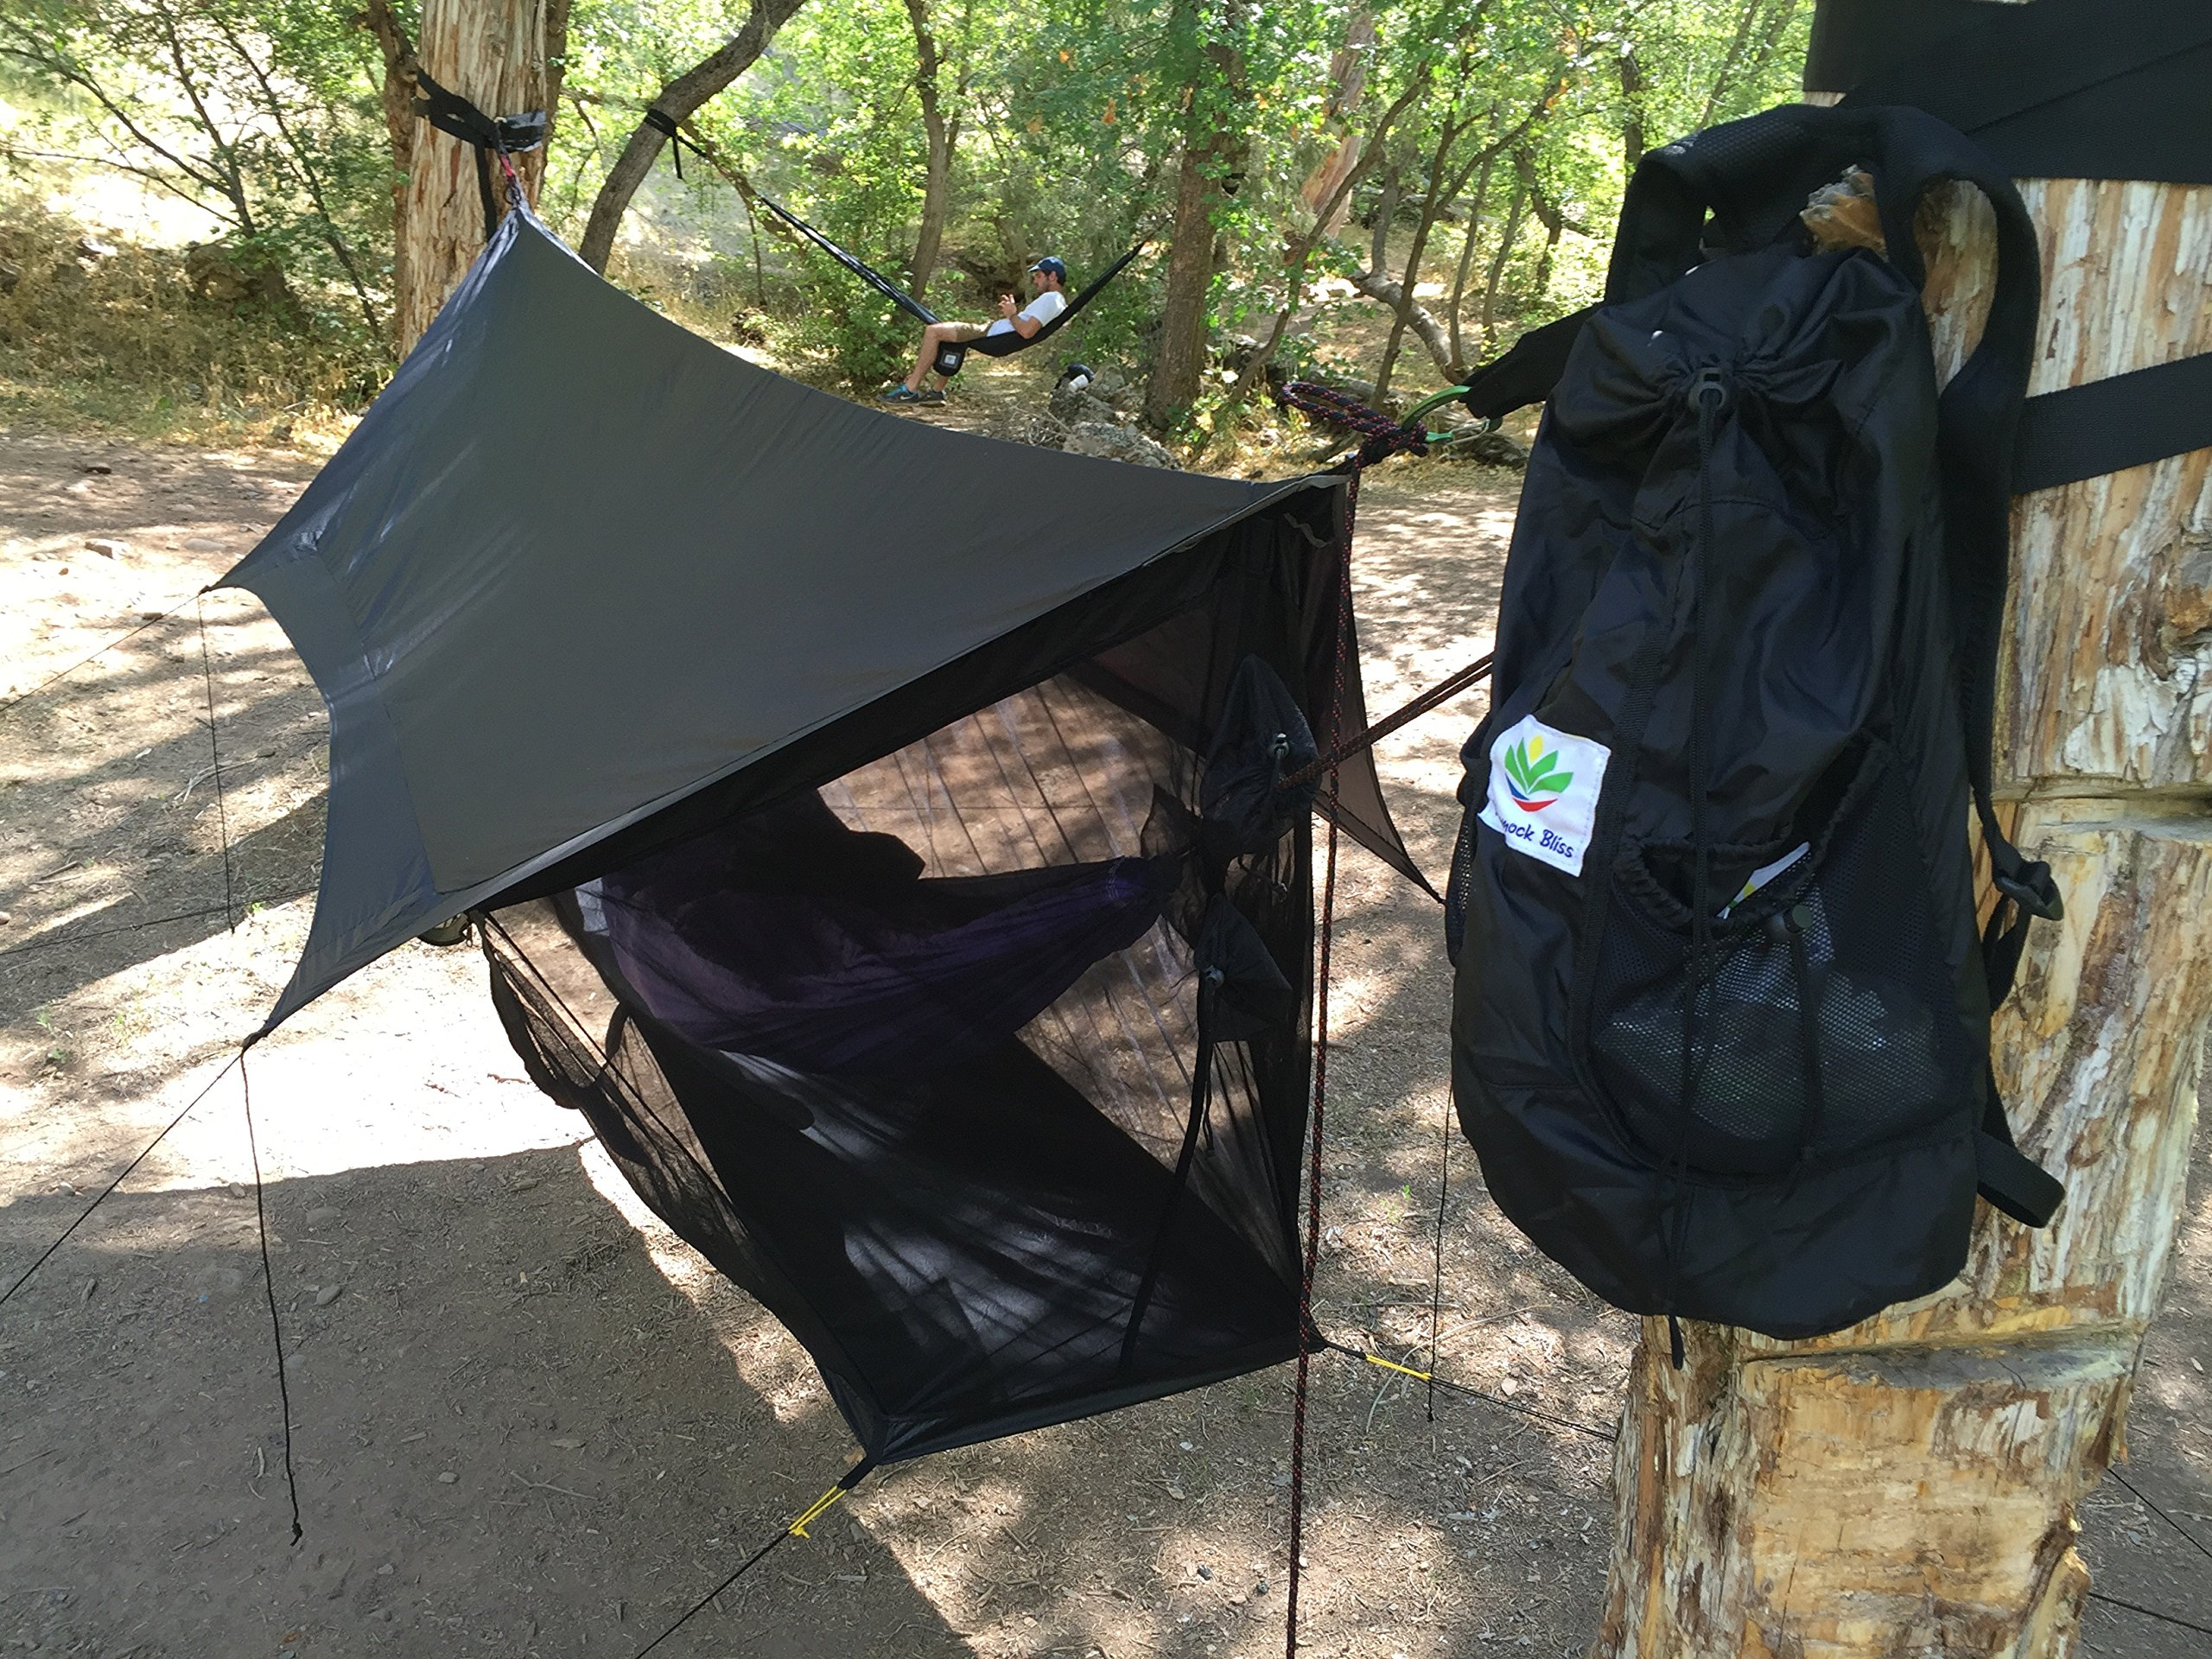 Hammock Bliss Sky Tent 2 - A Revolutionary 2 Person Hammock Tent - Waterproof and Bug Proof Hanging Tent Provides Spacious and Cozy Shelter For 2 Camping Hammocks - Embrace Hammock Camping Comfort by Hammock Bliss (Image #4)